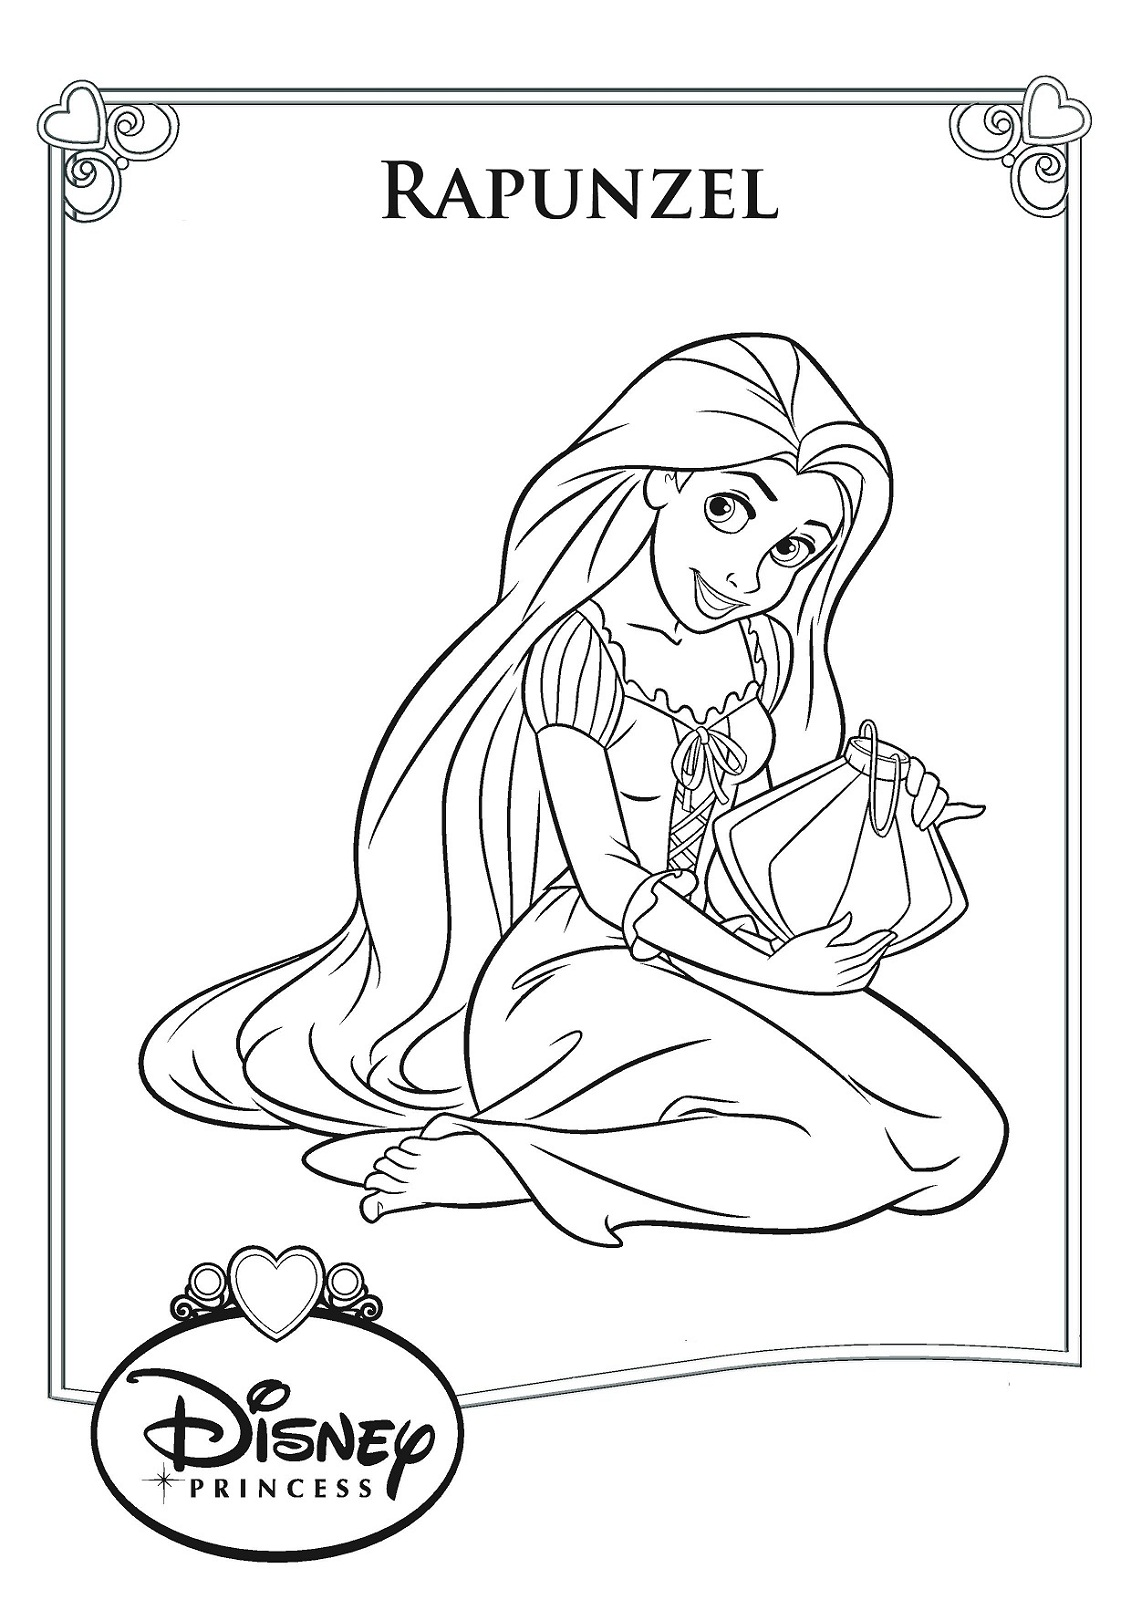 Rapunzel Color Pages To Print